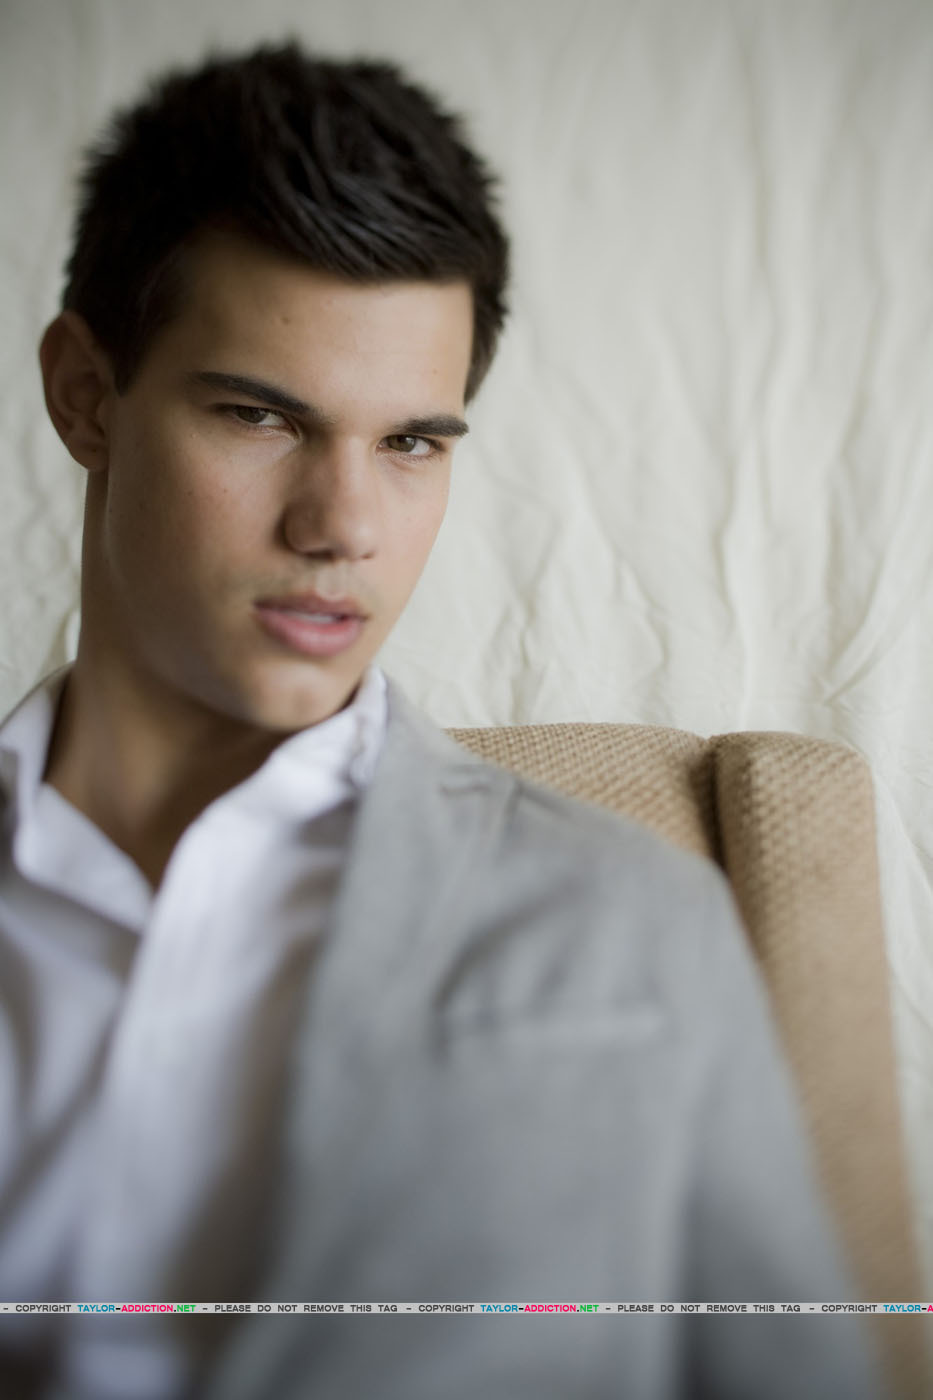 Taylor Lautner Photoshoot - L.A Times